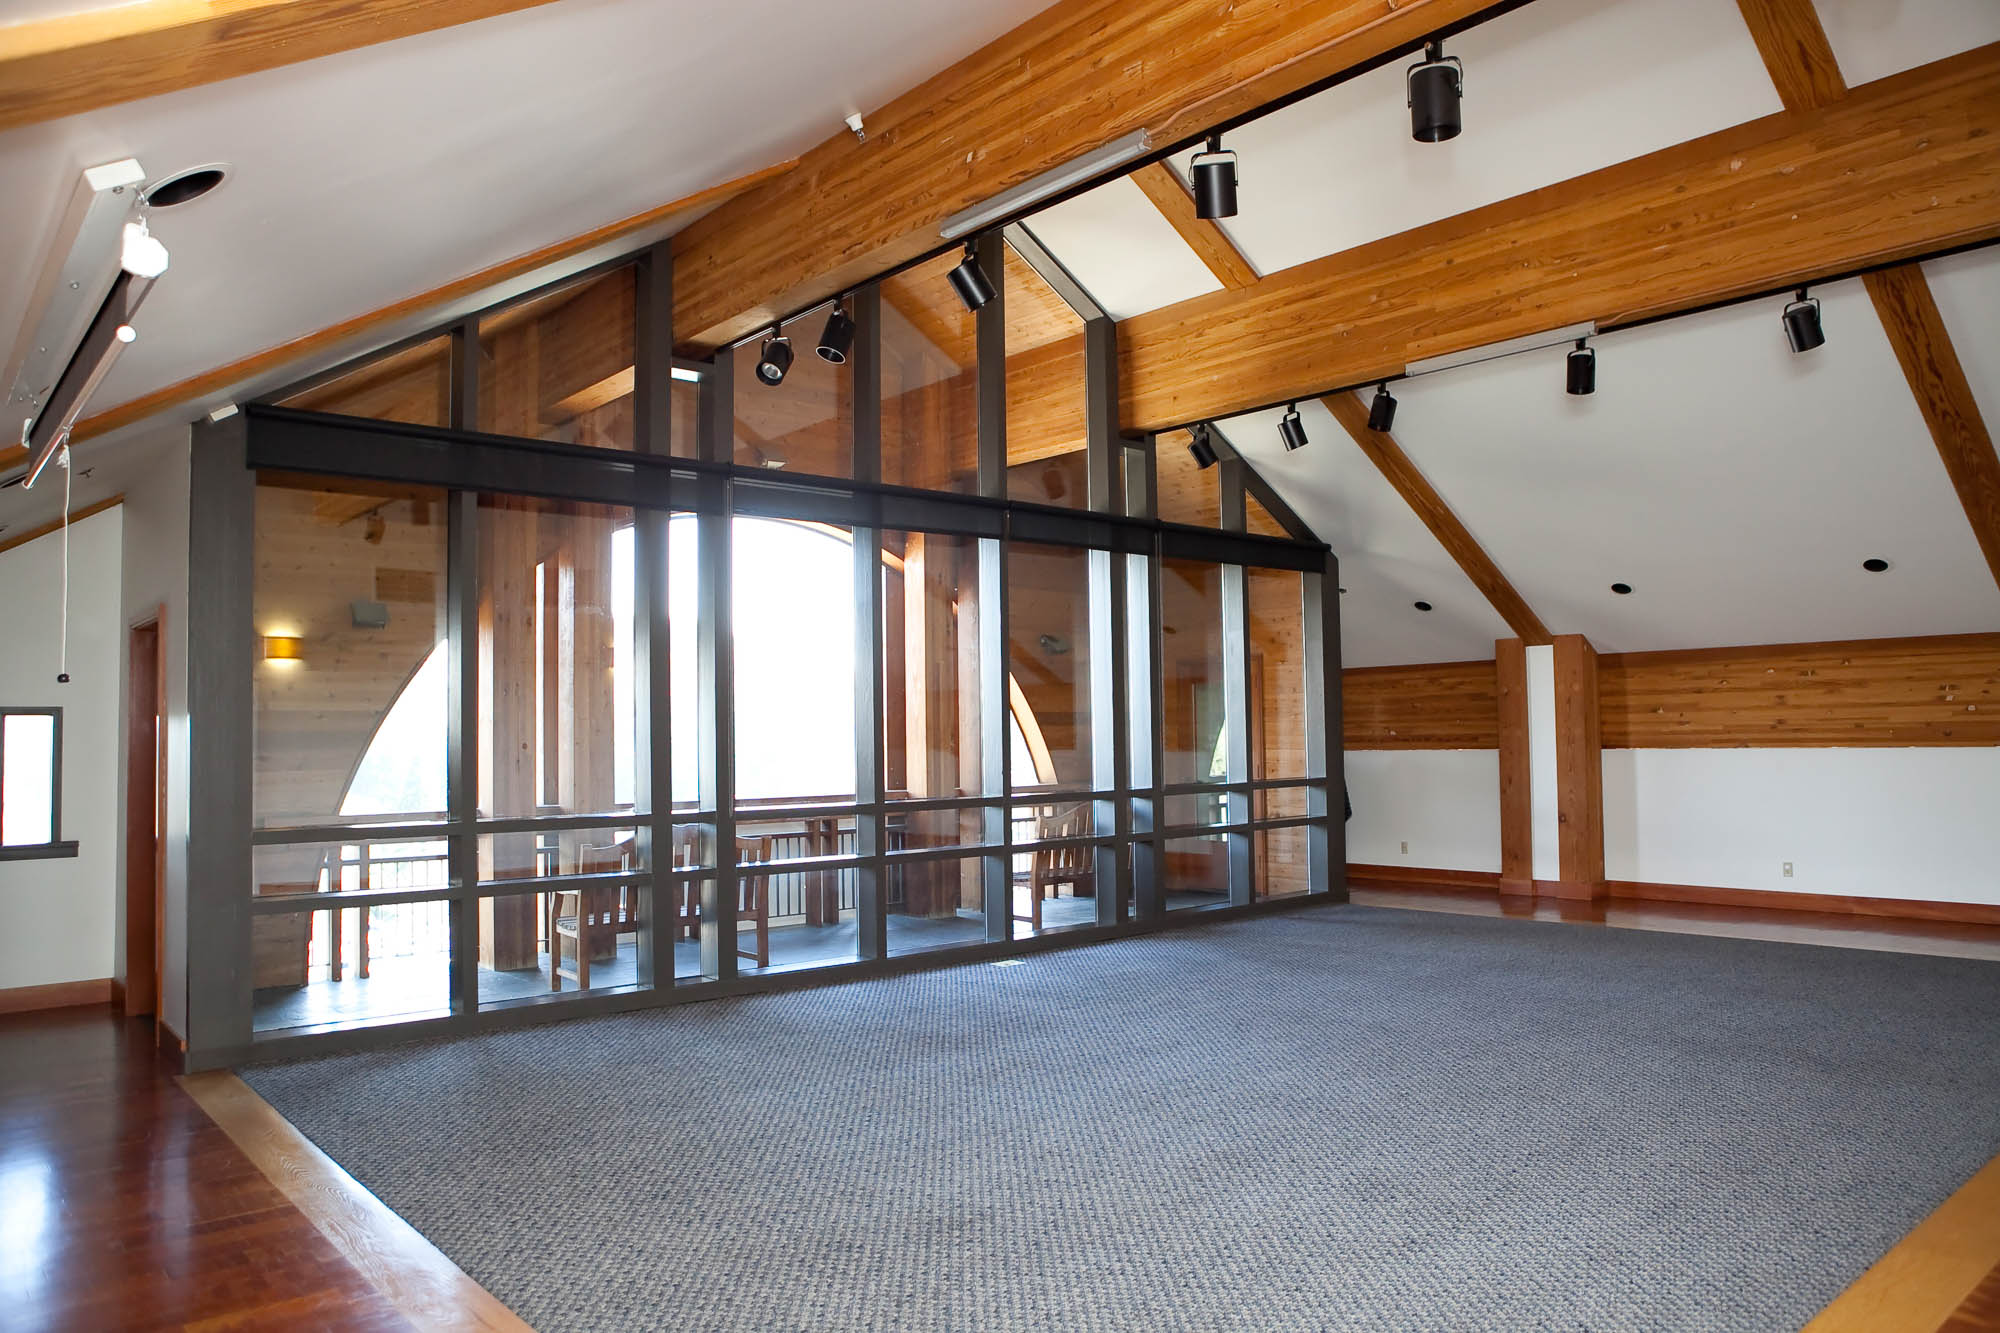 Room with wooden beams and large windows